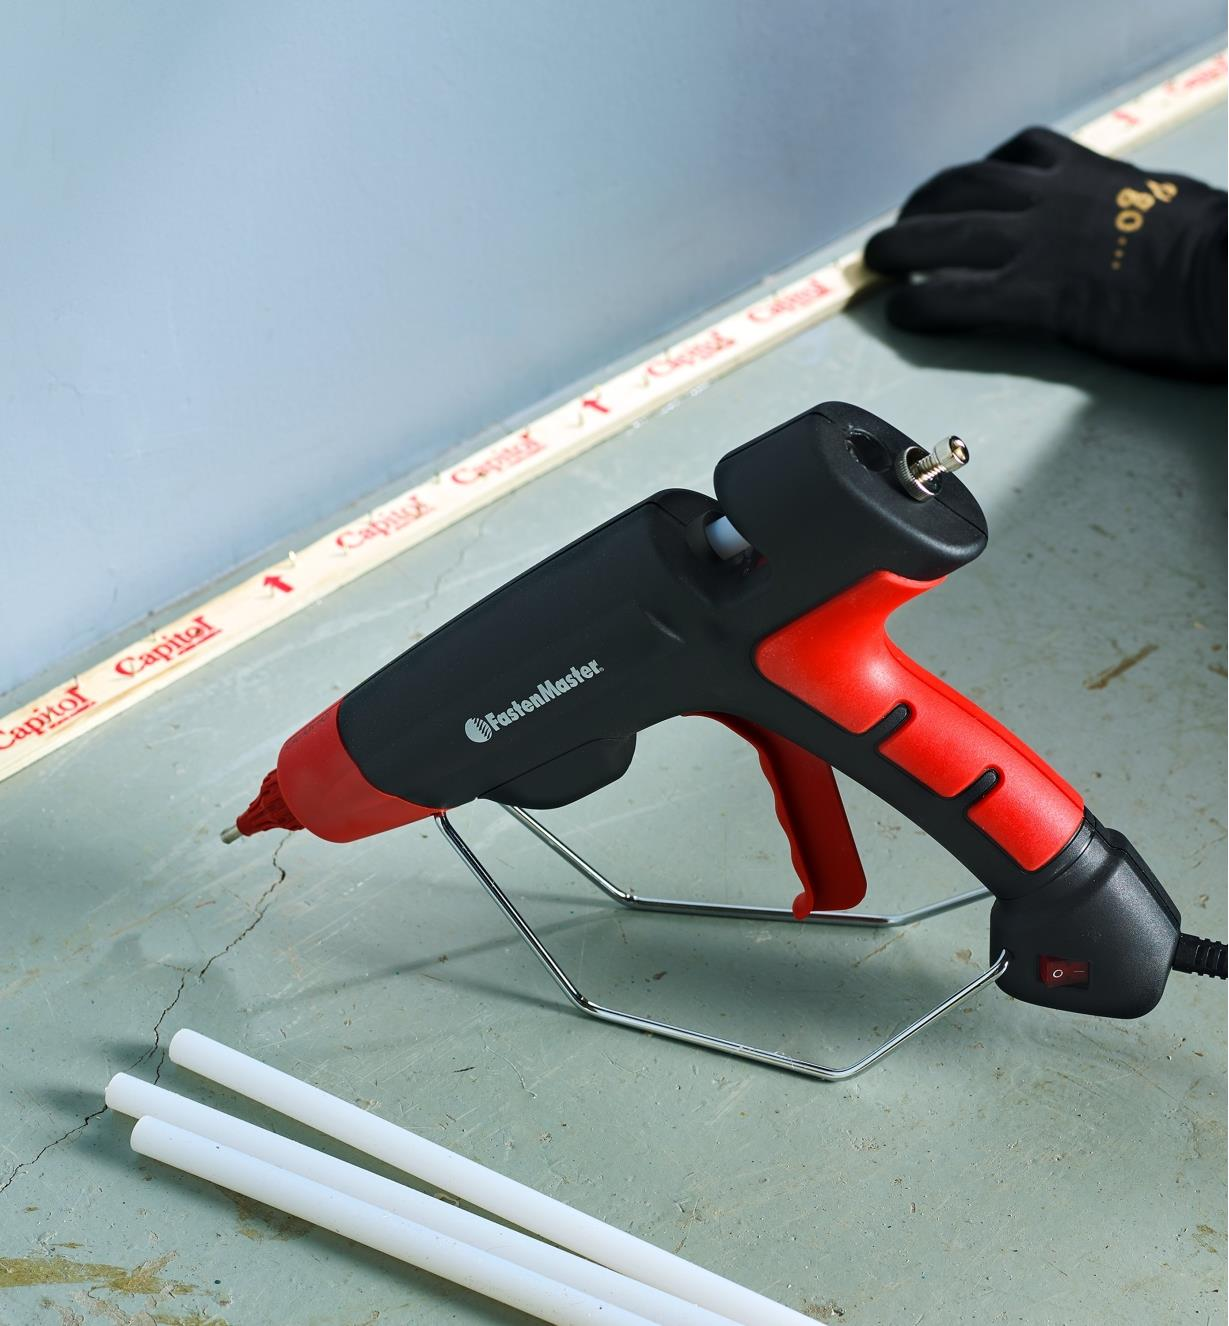 Flex 40 used with a FastenMaster pro hot-melt gun to mount carpet tack strips on a concrete floor